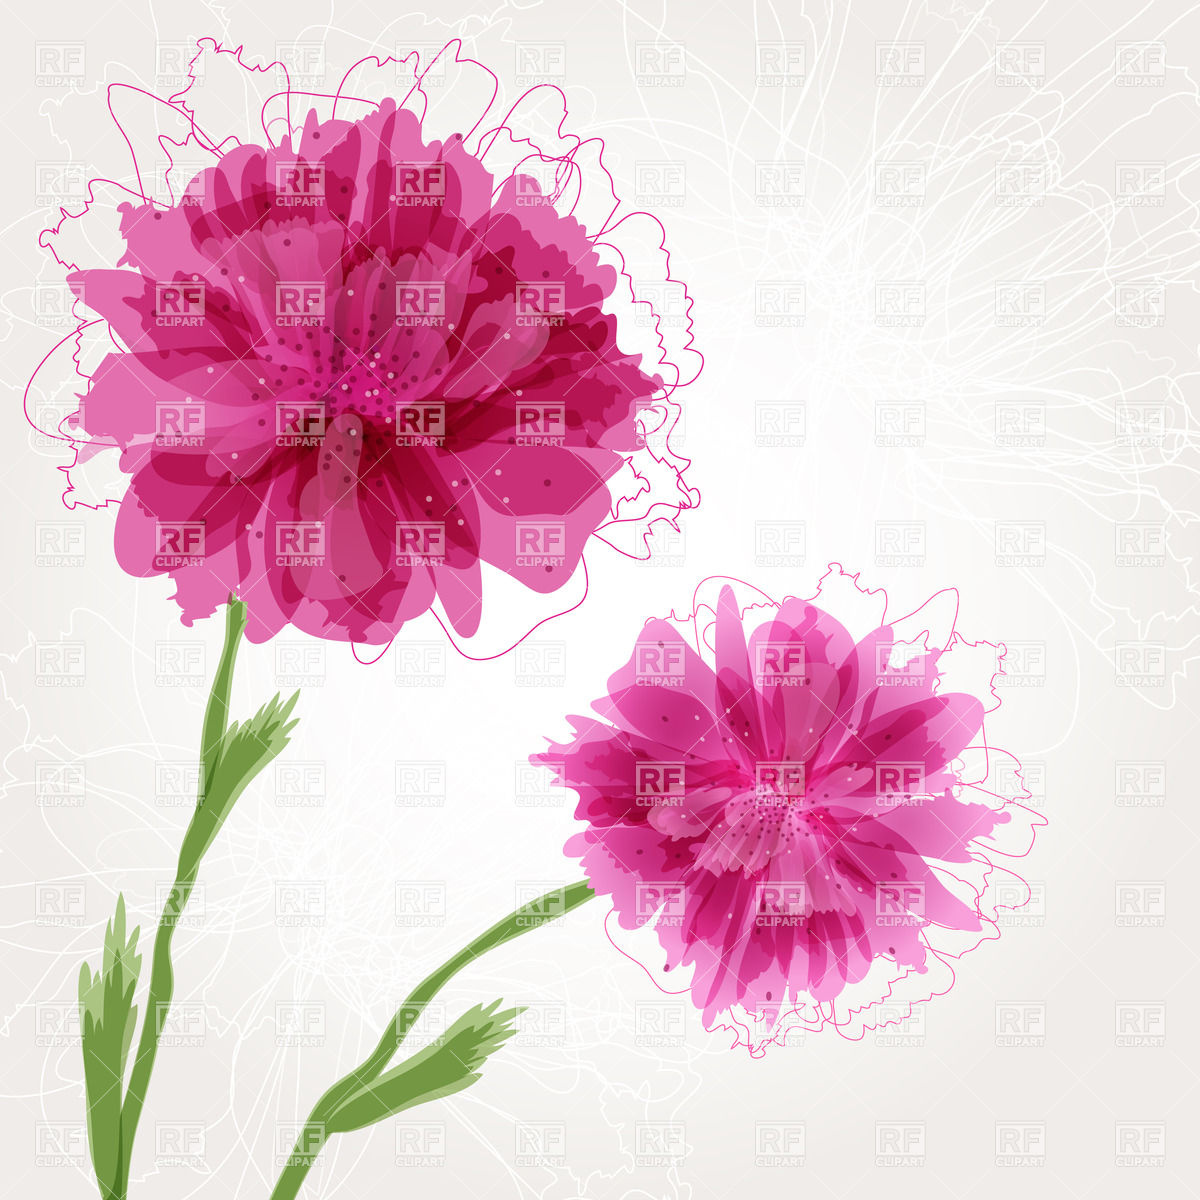 Peony flower with pink buds Vector Image #23263.